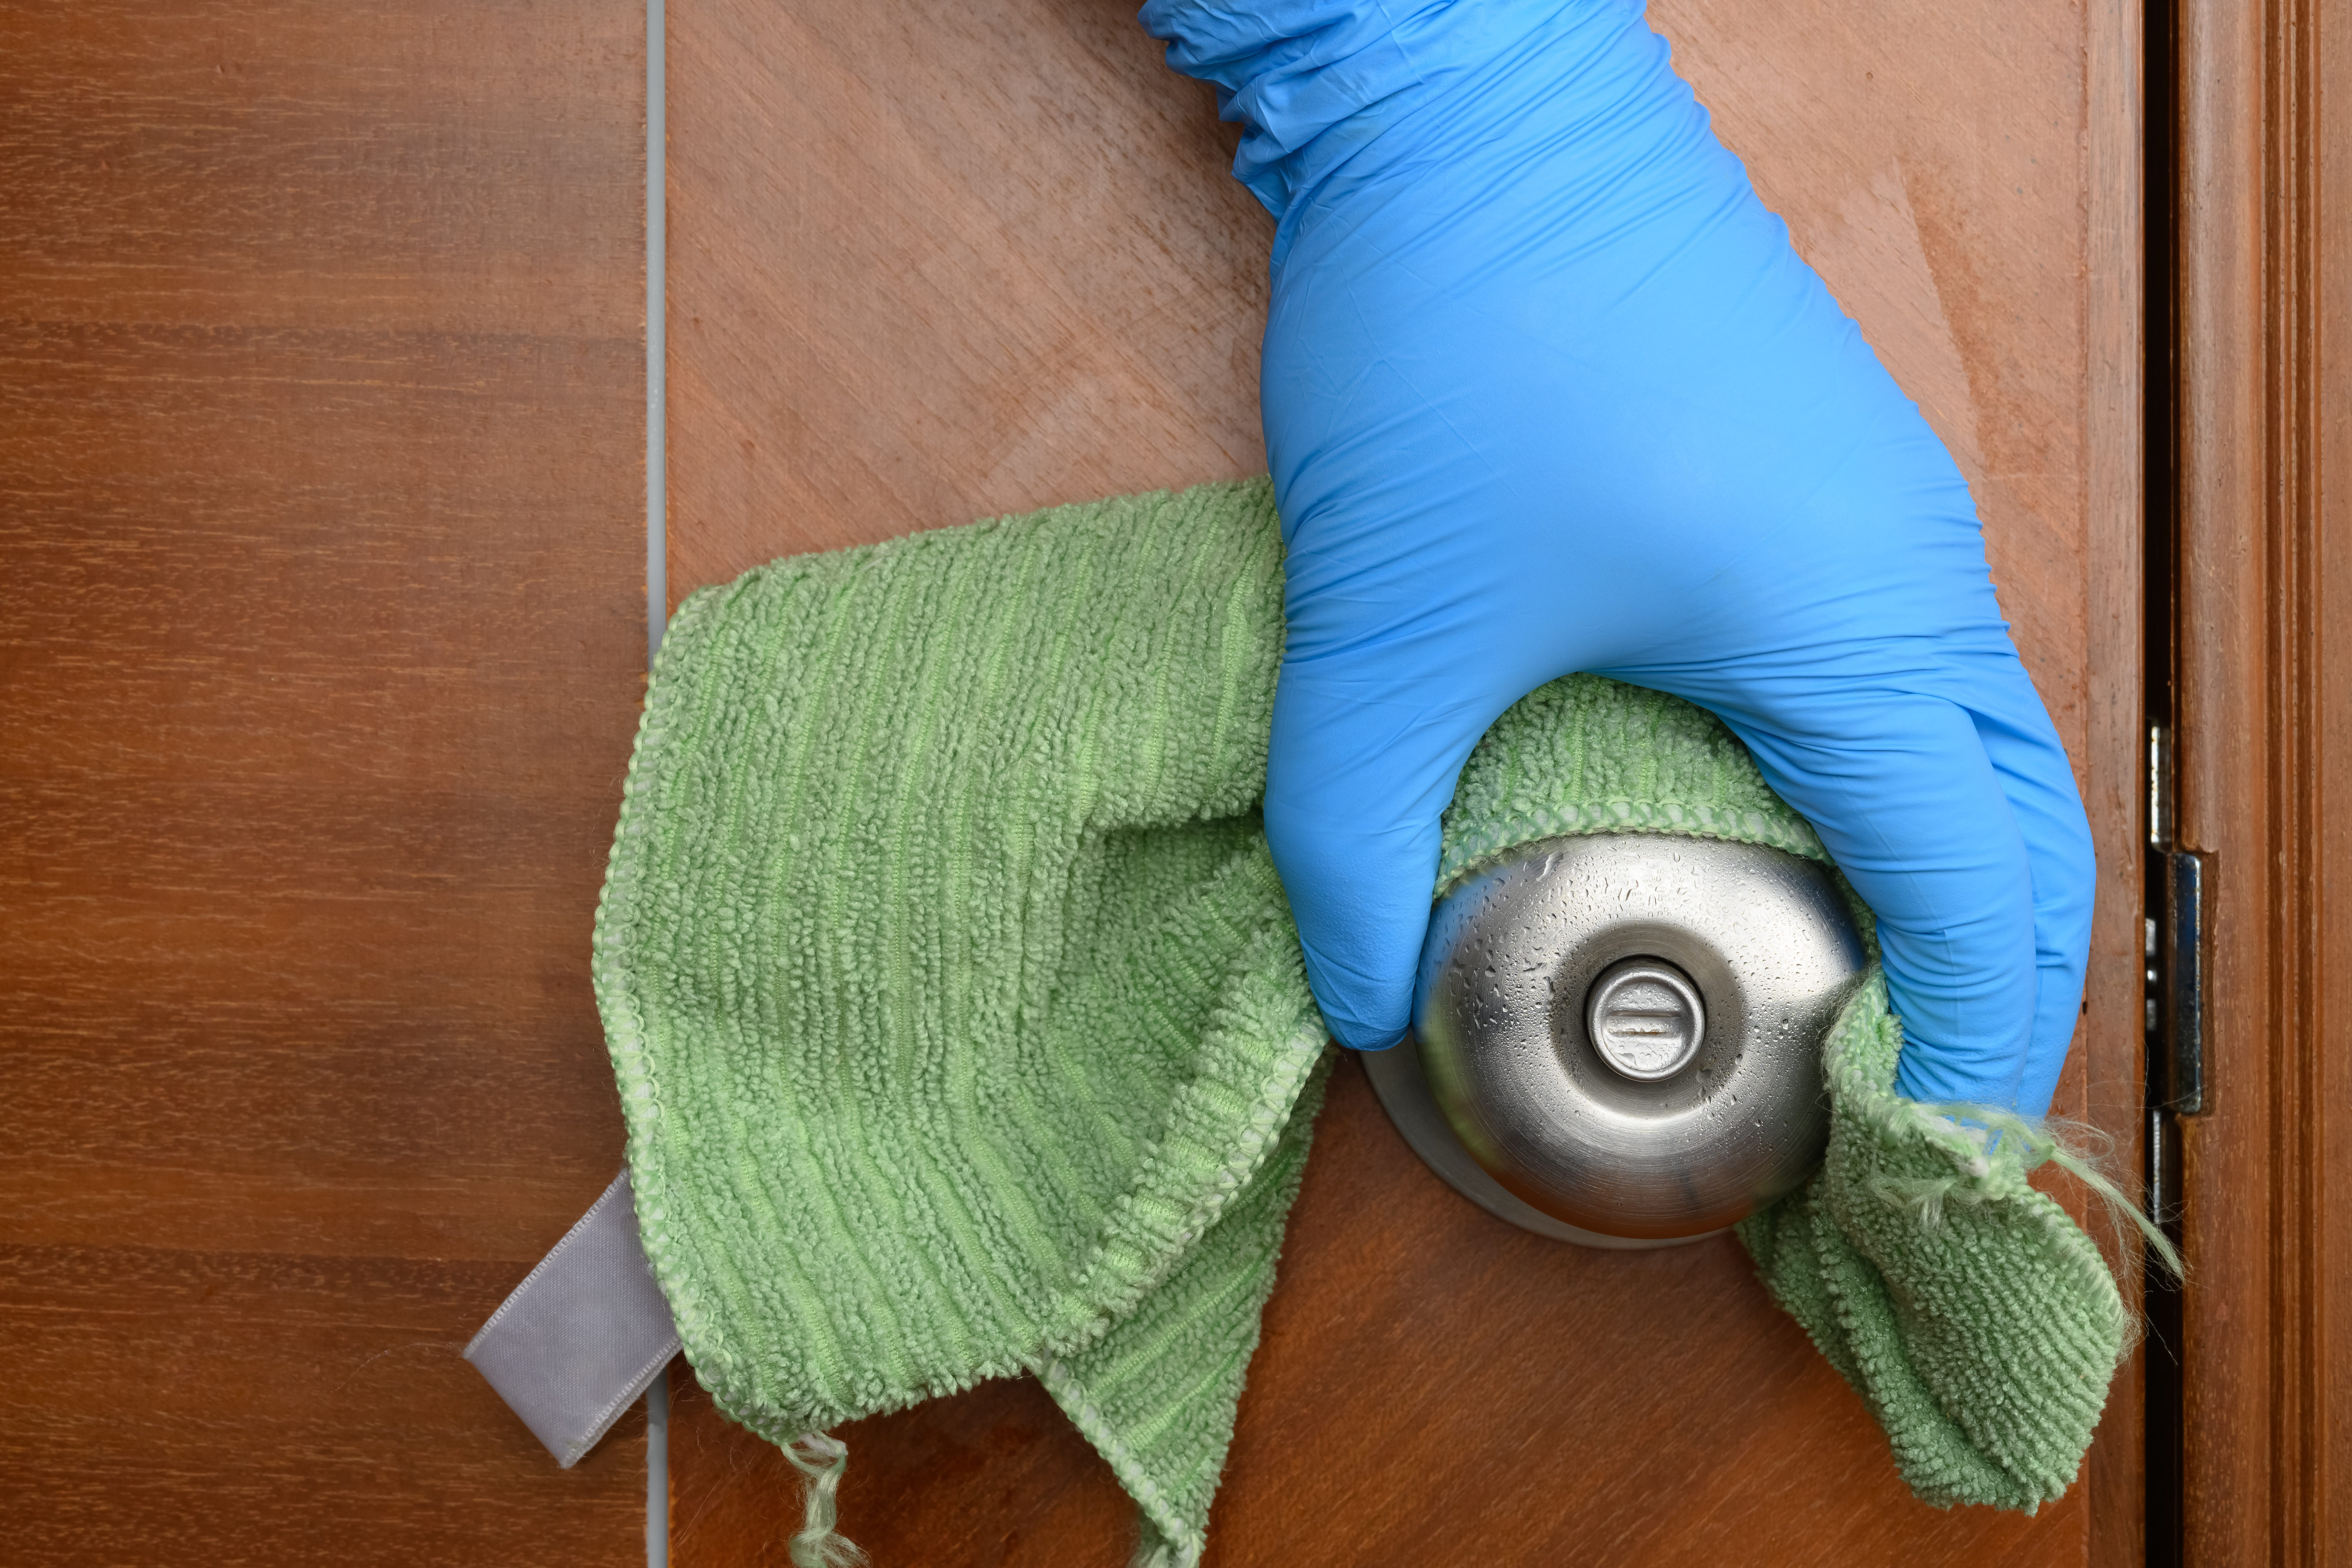 wiping a door lock with disinfectant liquid